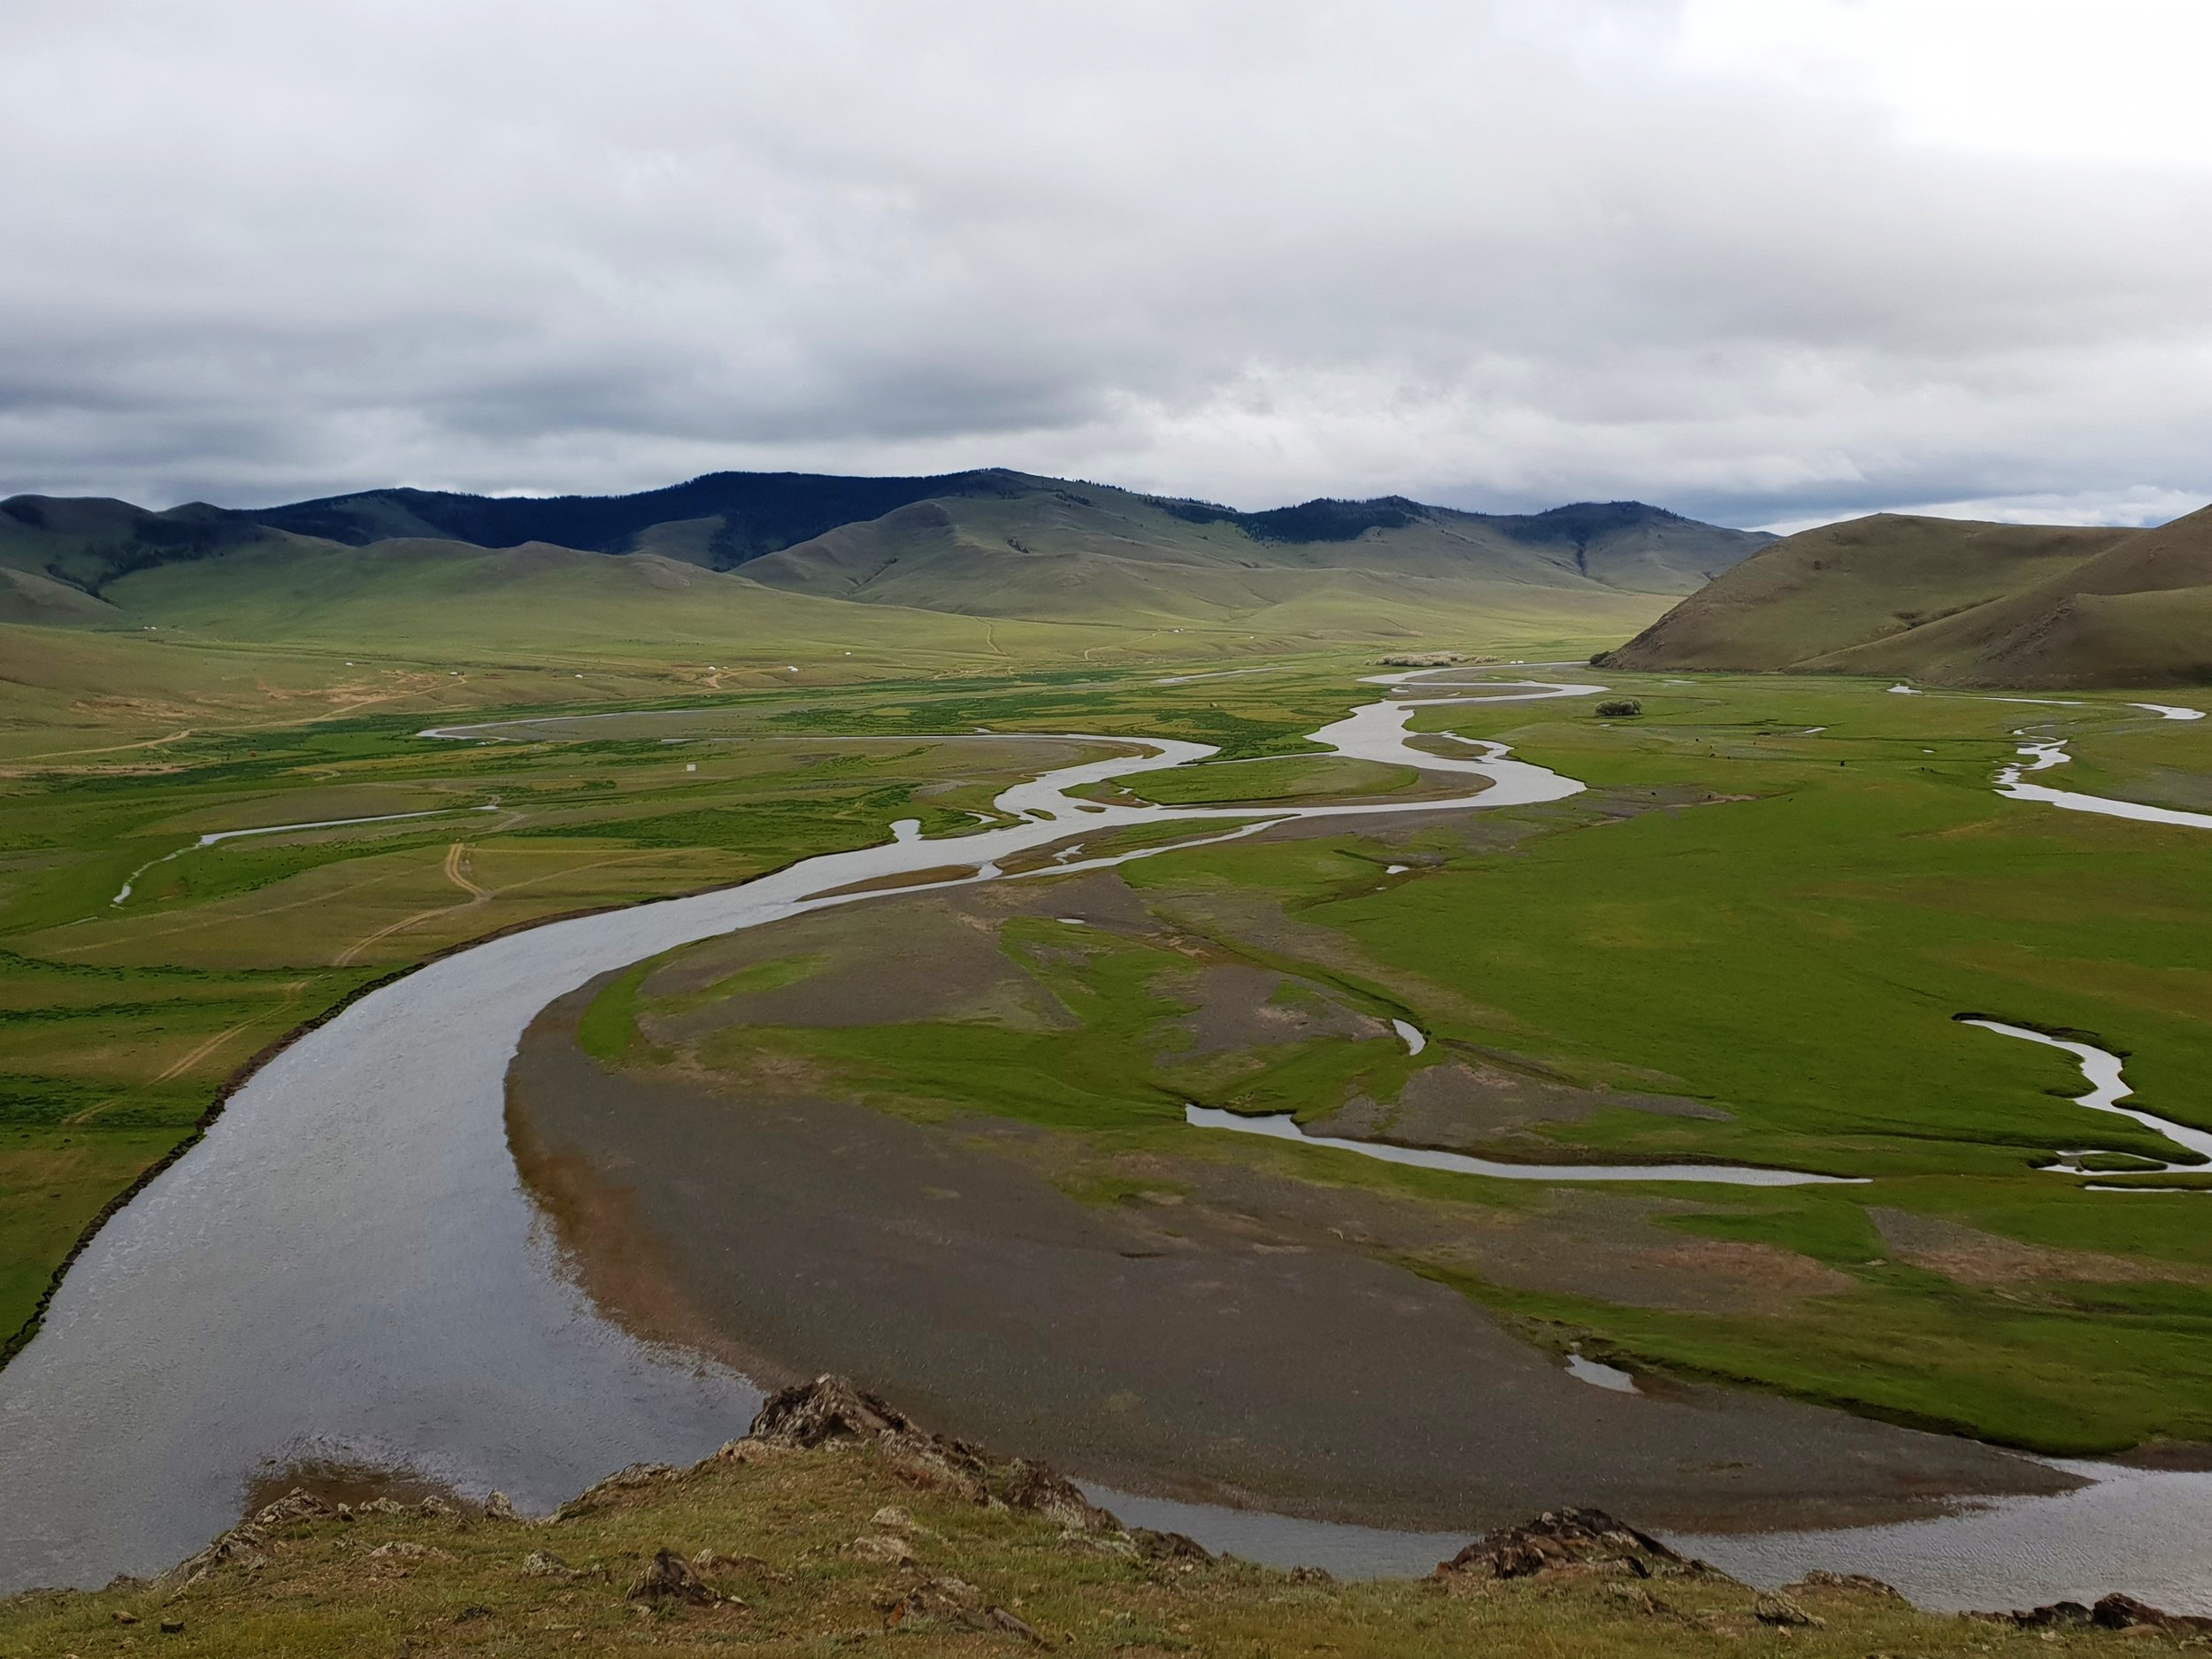 When the weather was poor, which fortunately it wasn't for most of the trip, Mongolian scenery is similar in parts to Iceland or the Faroe Islands.